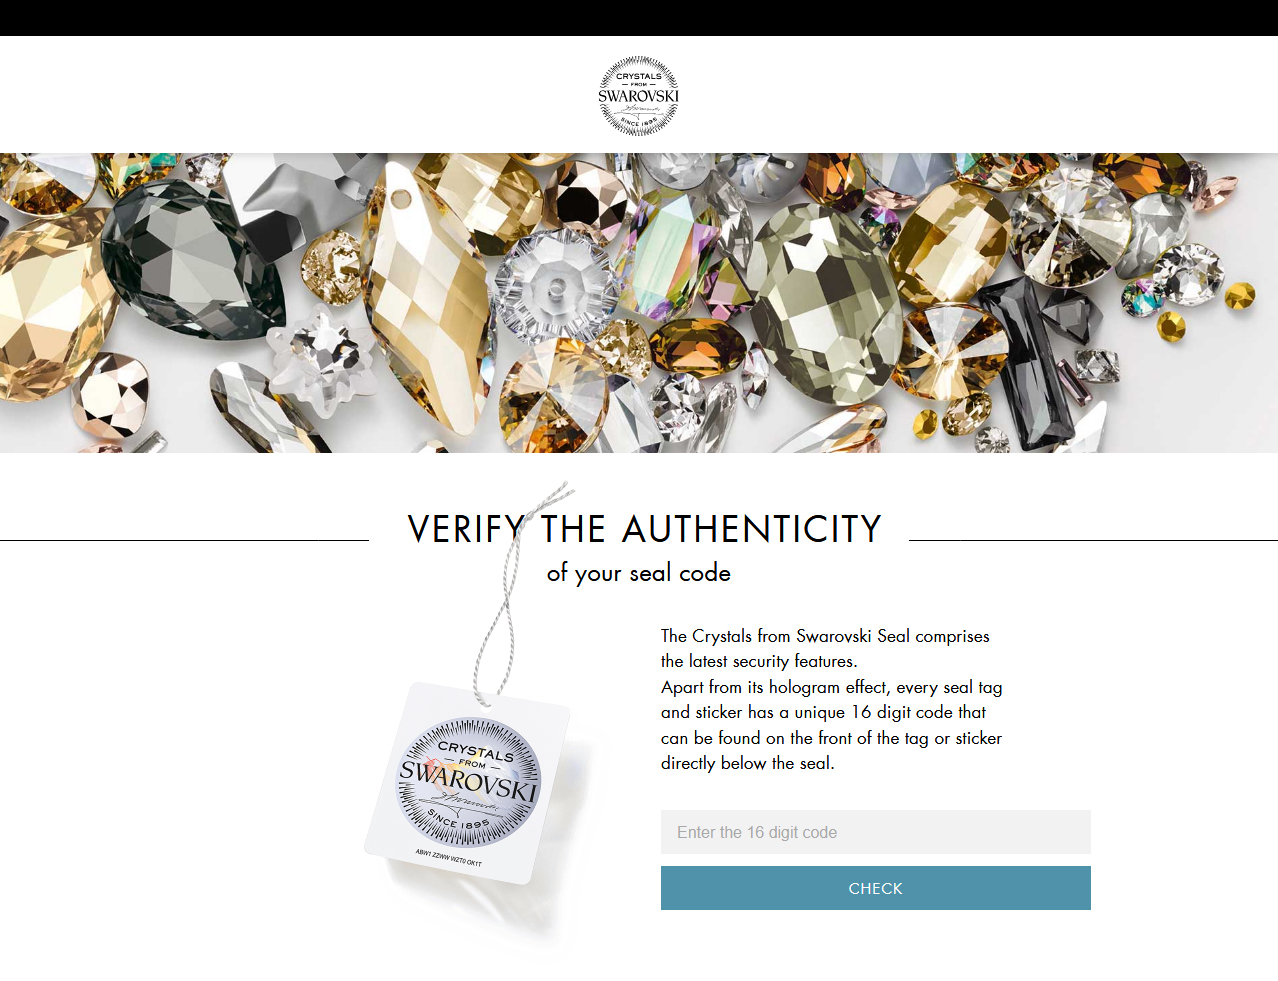 Verify the Authenticity of your Swarovski Code